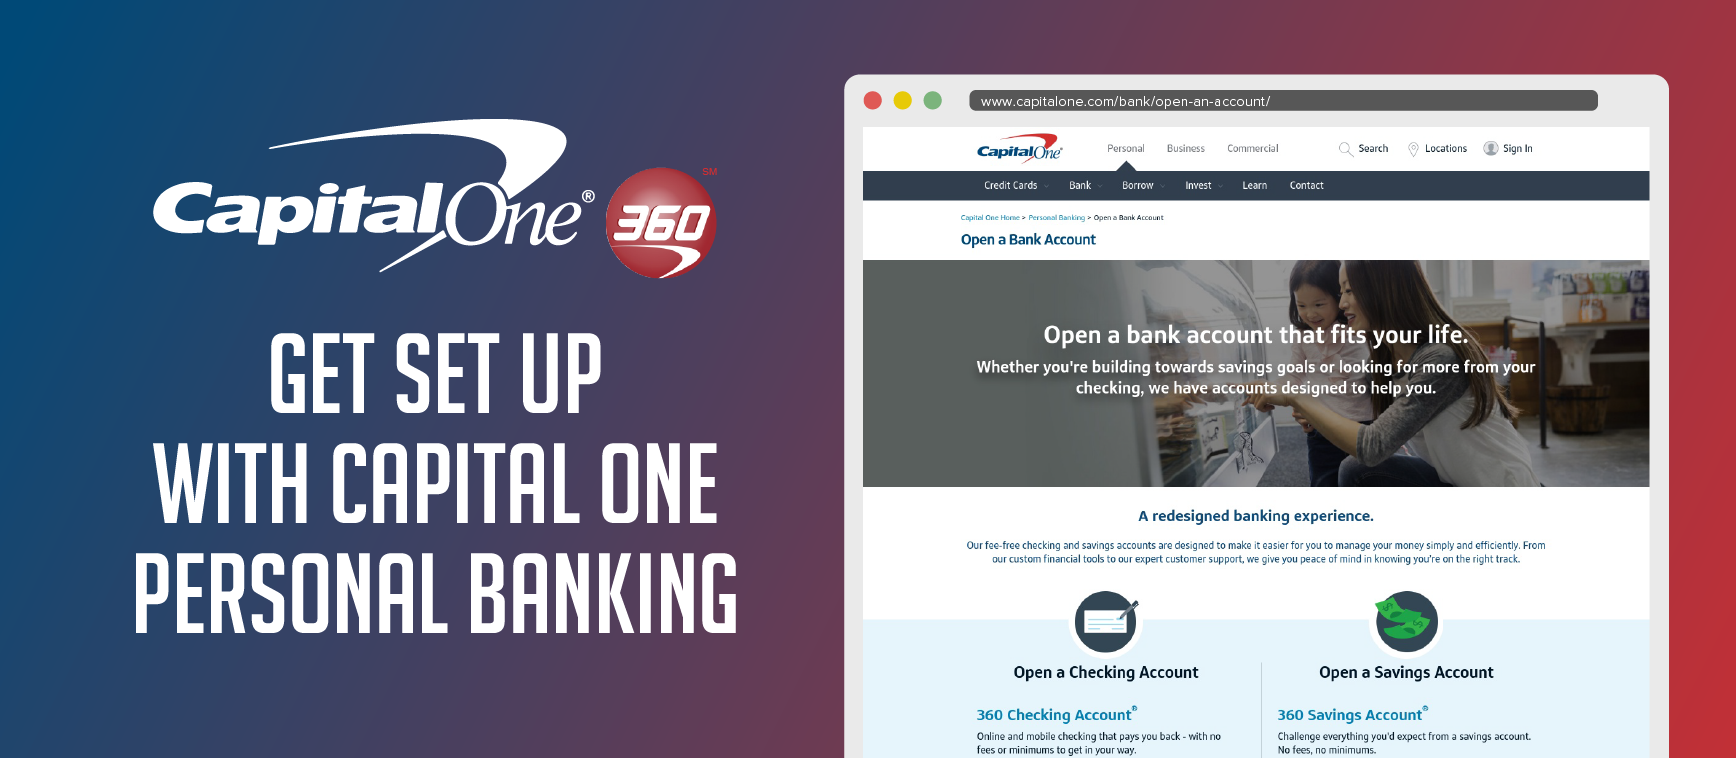 Capital One Bank Review - CreditLoan.com®